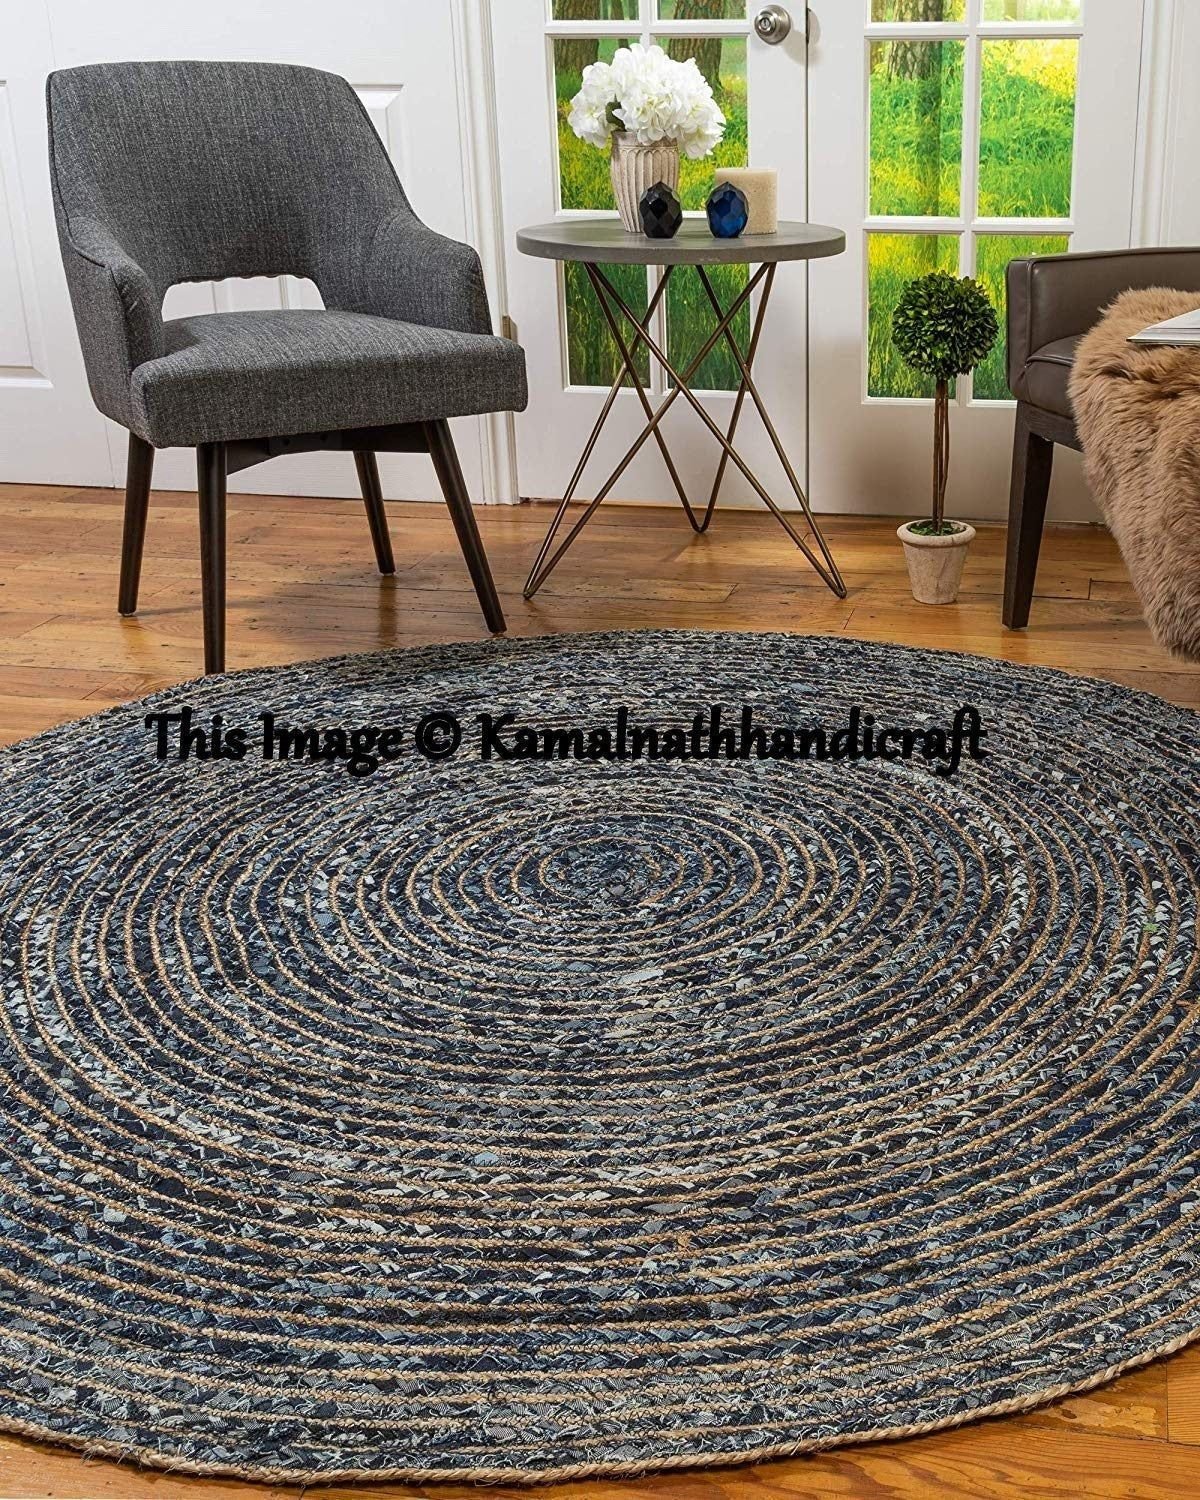 Indian Handmade Hand Braided Bohemian Colorful Cotton Jute Area Rug Round Rug Multi Colors Home Decor Rugs 7x7 Feet Jute Denim Round Rug Jute Round Rug Jute Area Rugs Floor Rugs